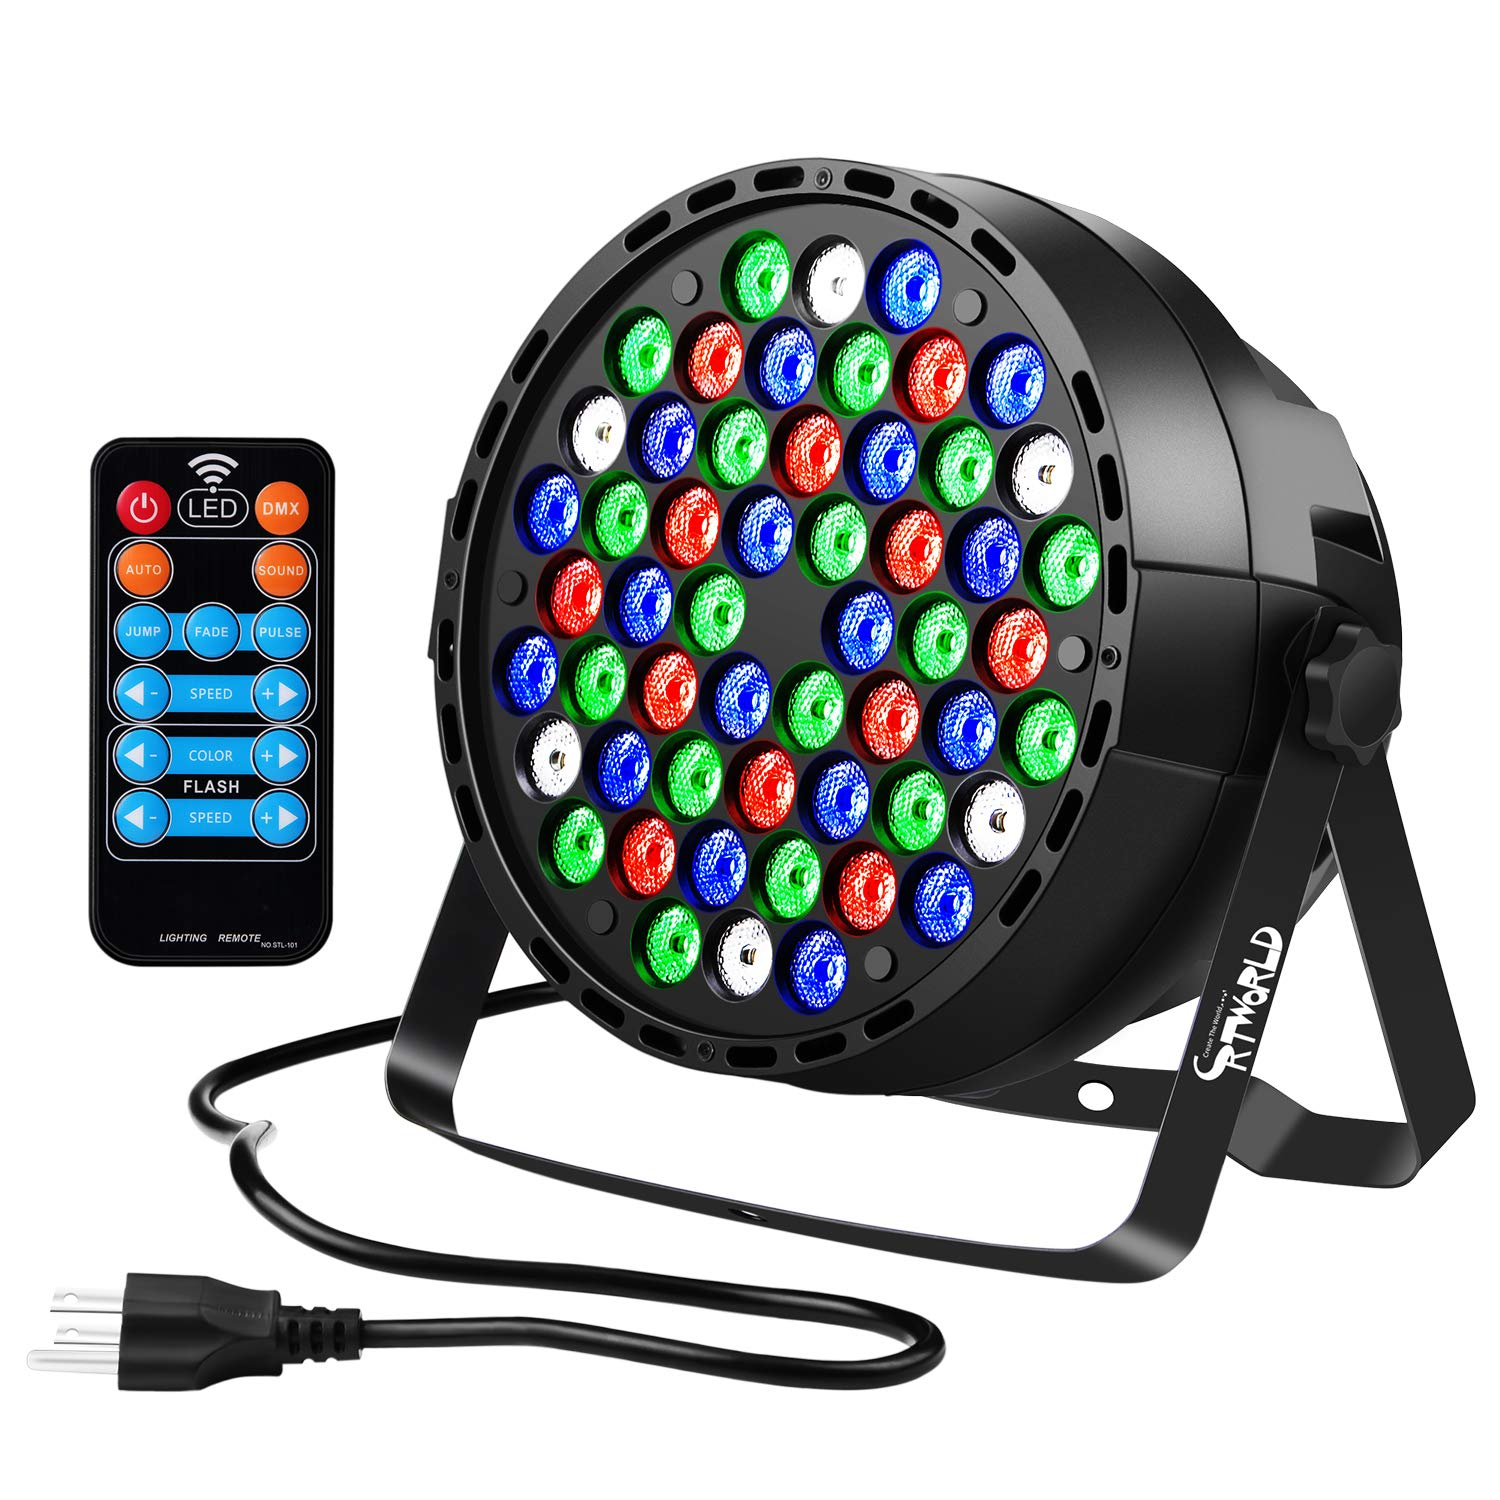 LED Stage Lights, Crtworld 54 LED RGBW Uplighting Sound Activated and DMX Control DJ Lights with Remote